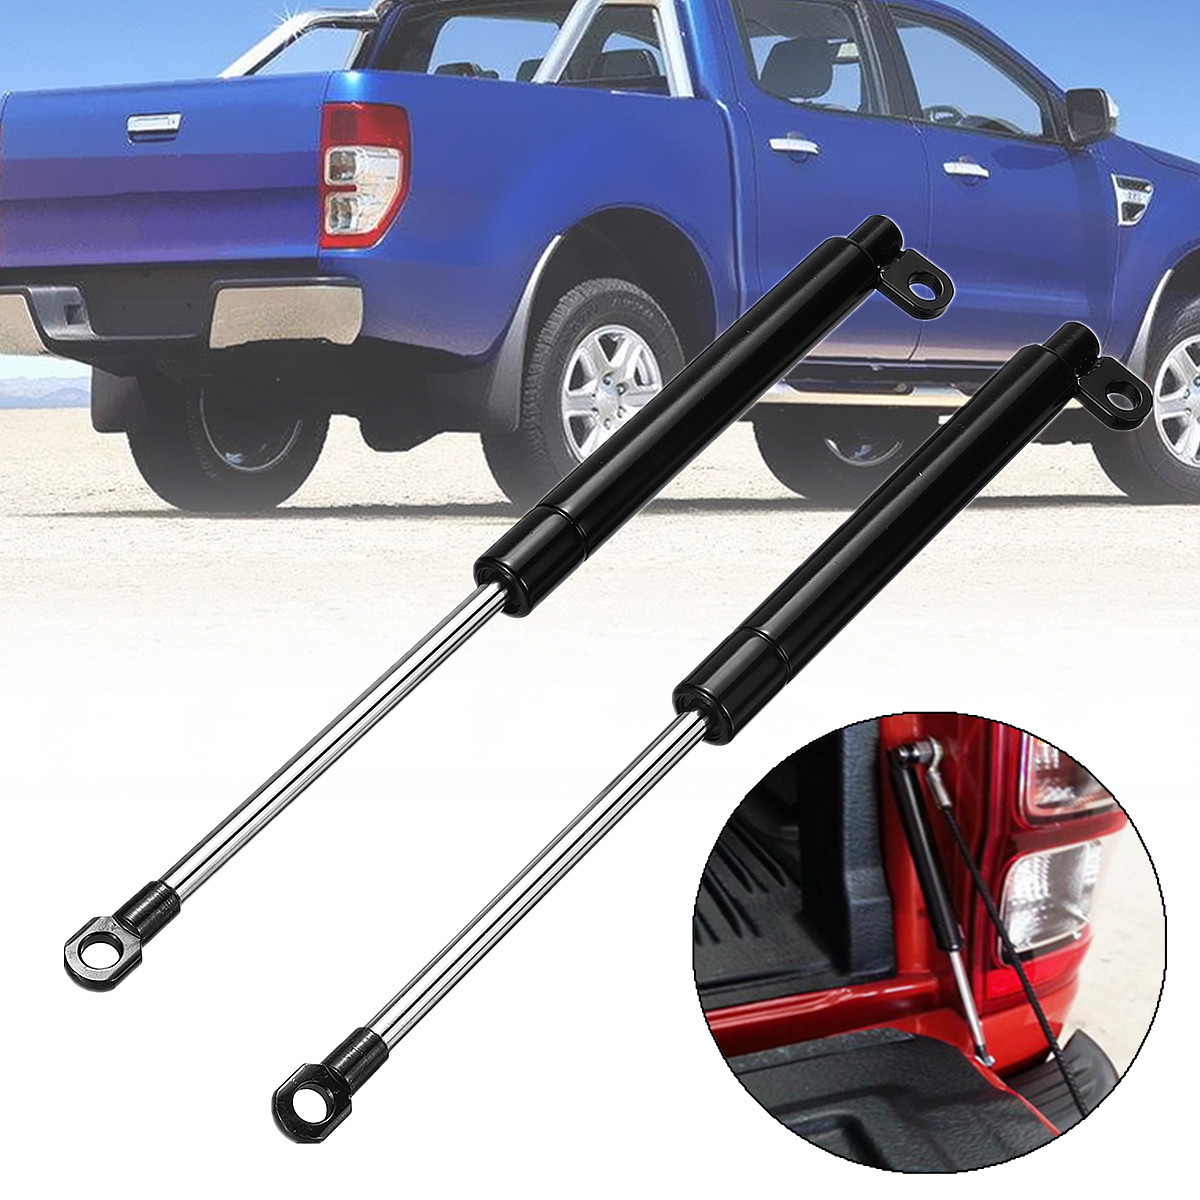 No Drilling Required 1 Pair Rear Tailgate Slow Down & Easy Up Strut Kit for Ford PX Ranger 2011 2017 Easy Install Anti breaking